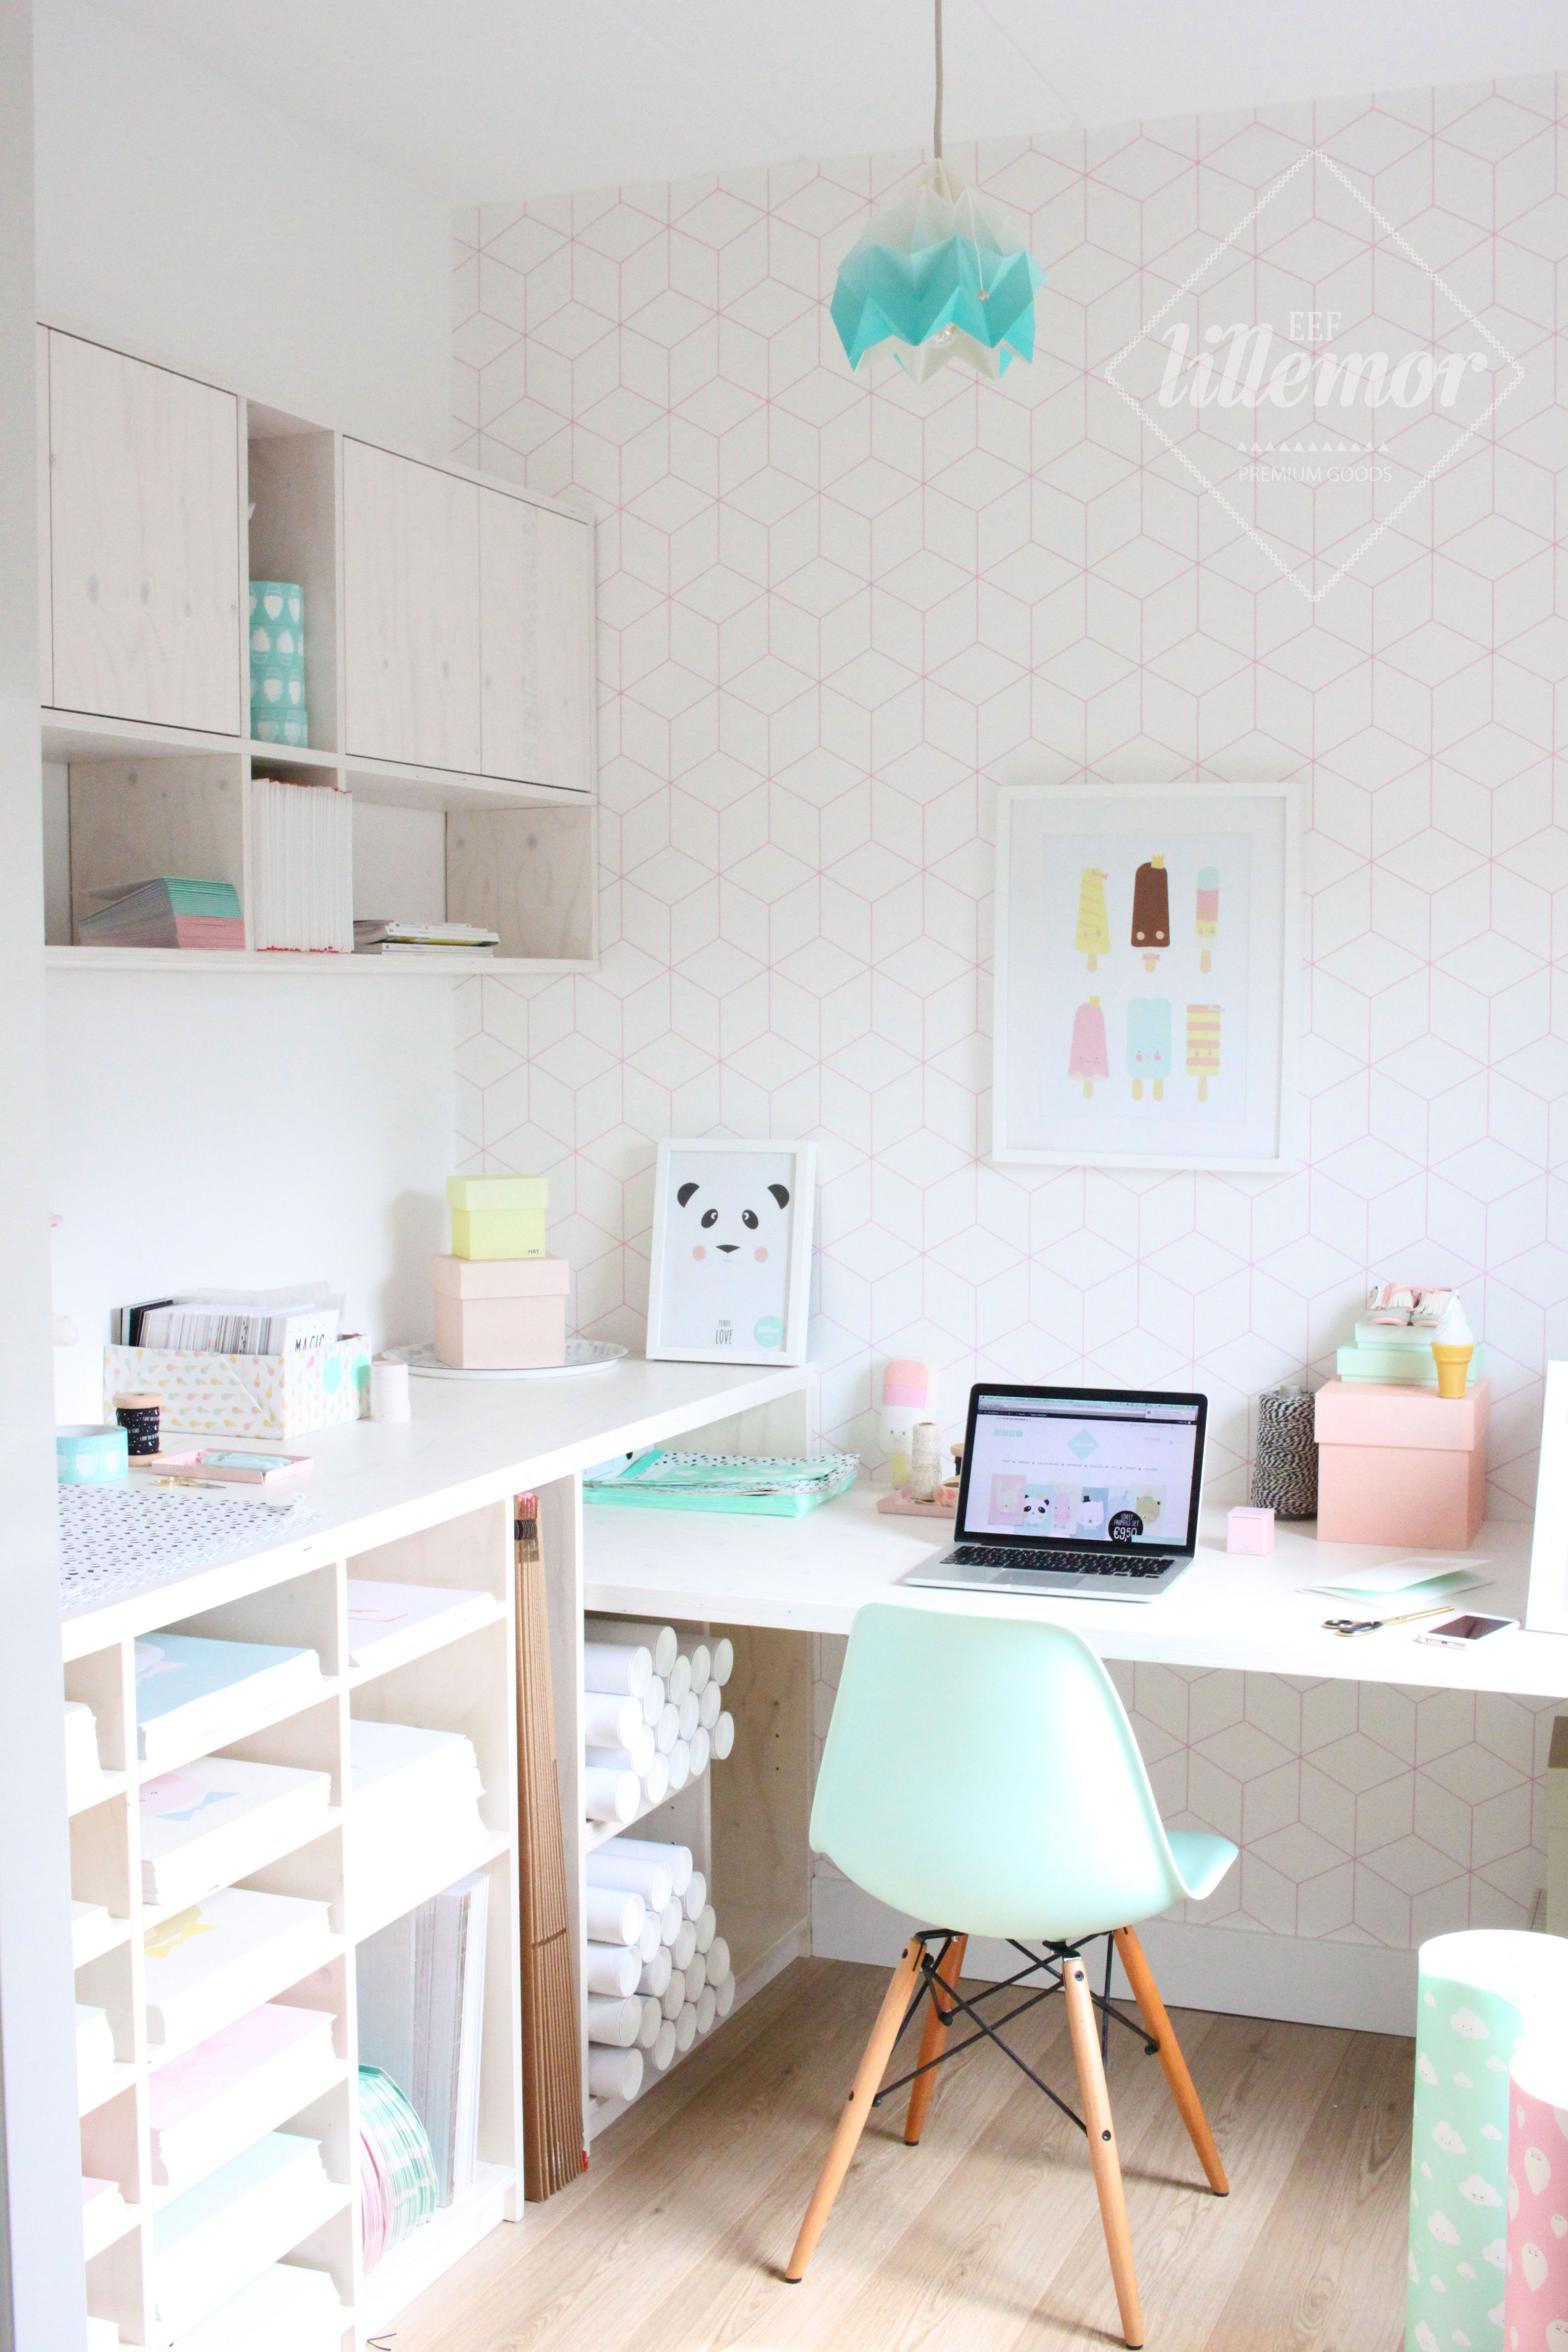 Agreable Un Bureau Au Style Scandinave Et Girly Aux Couleurs Pastels